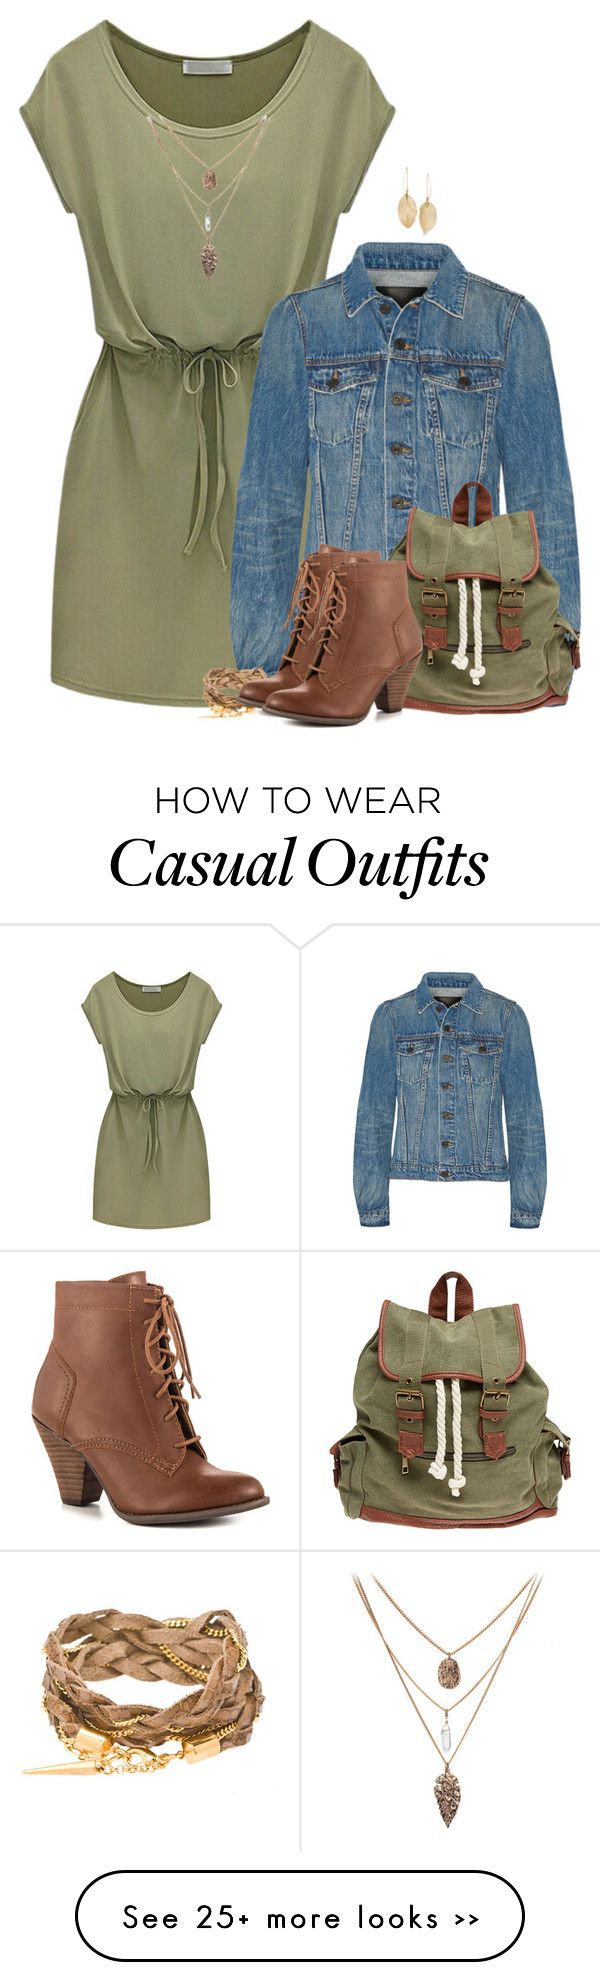 """Casual Dress & Denim Jacket 3"" by majezy on Polyvore featuring Proenza Schouler, Wet Seal, Mojo Moxy and Lulu*s"